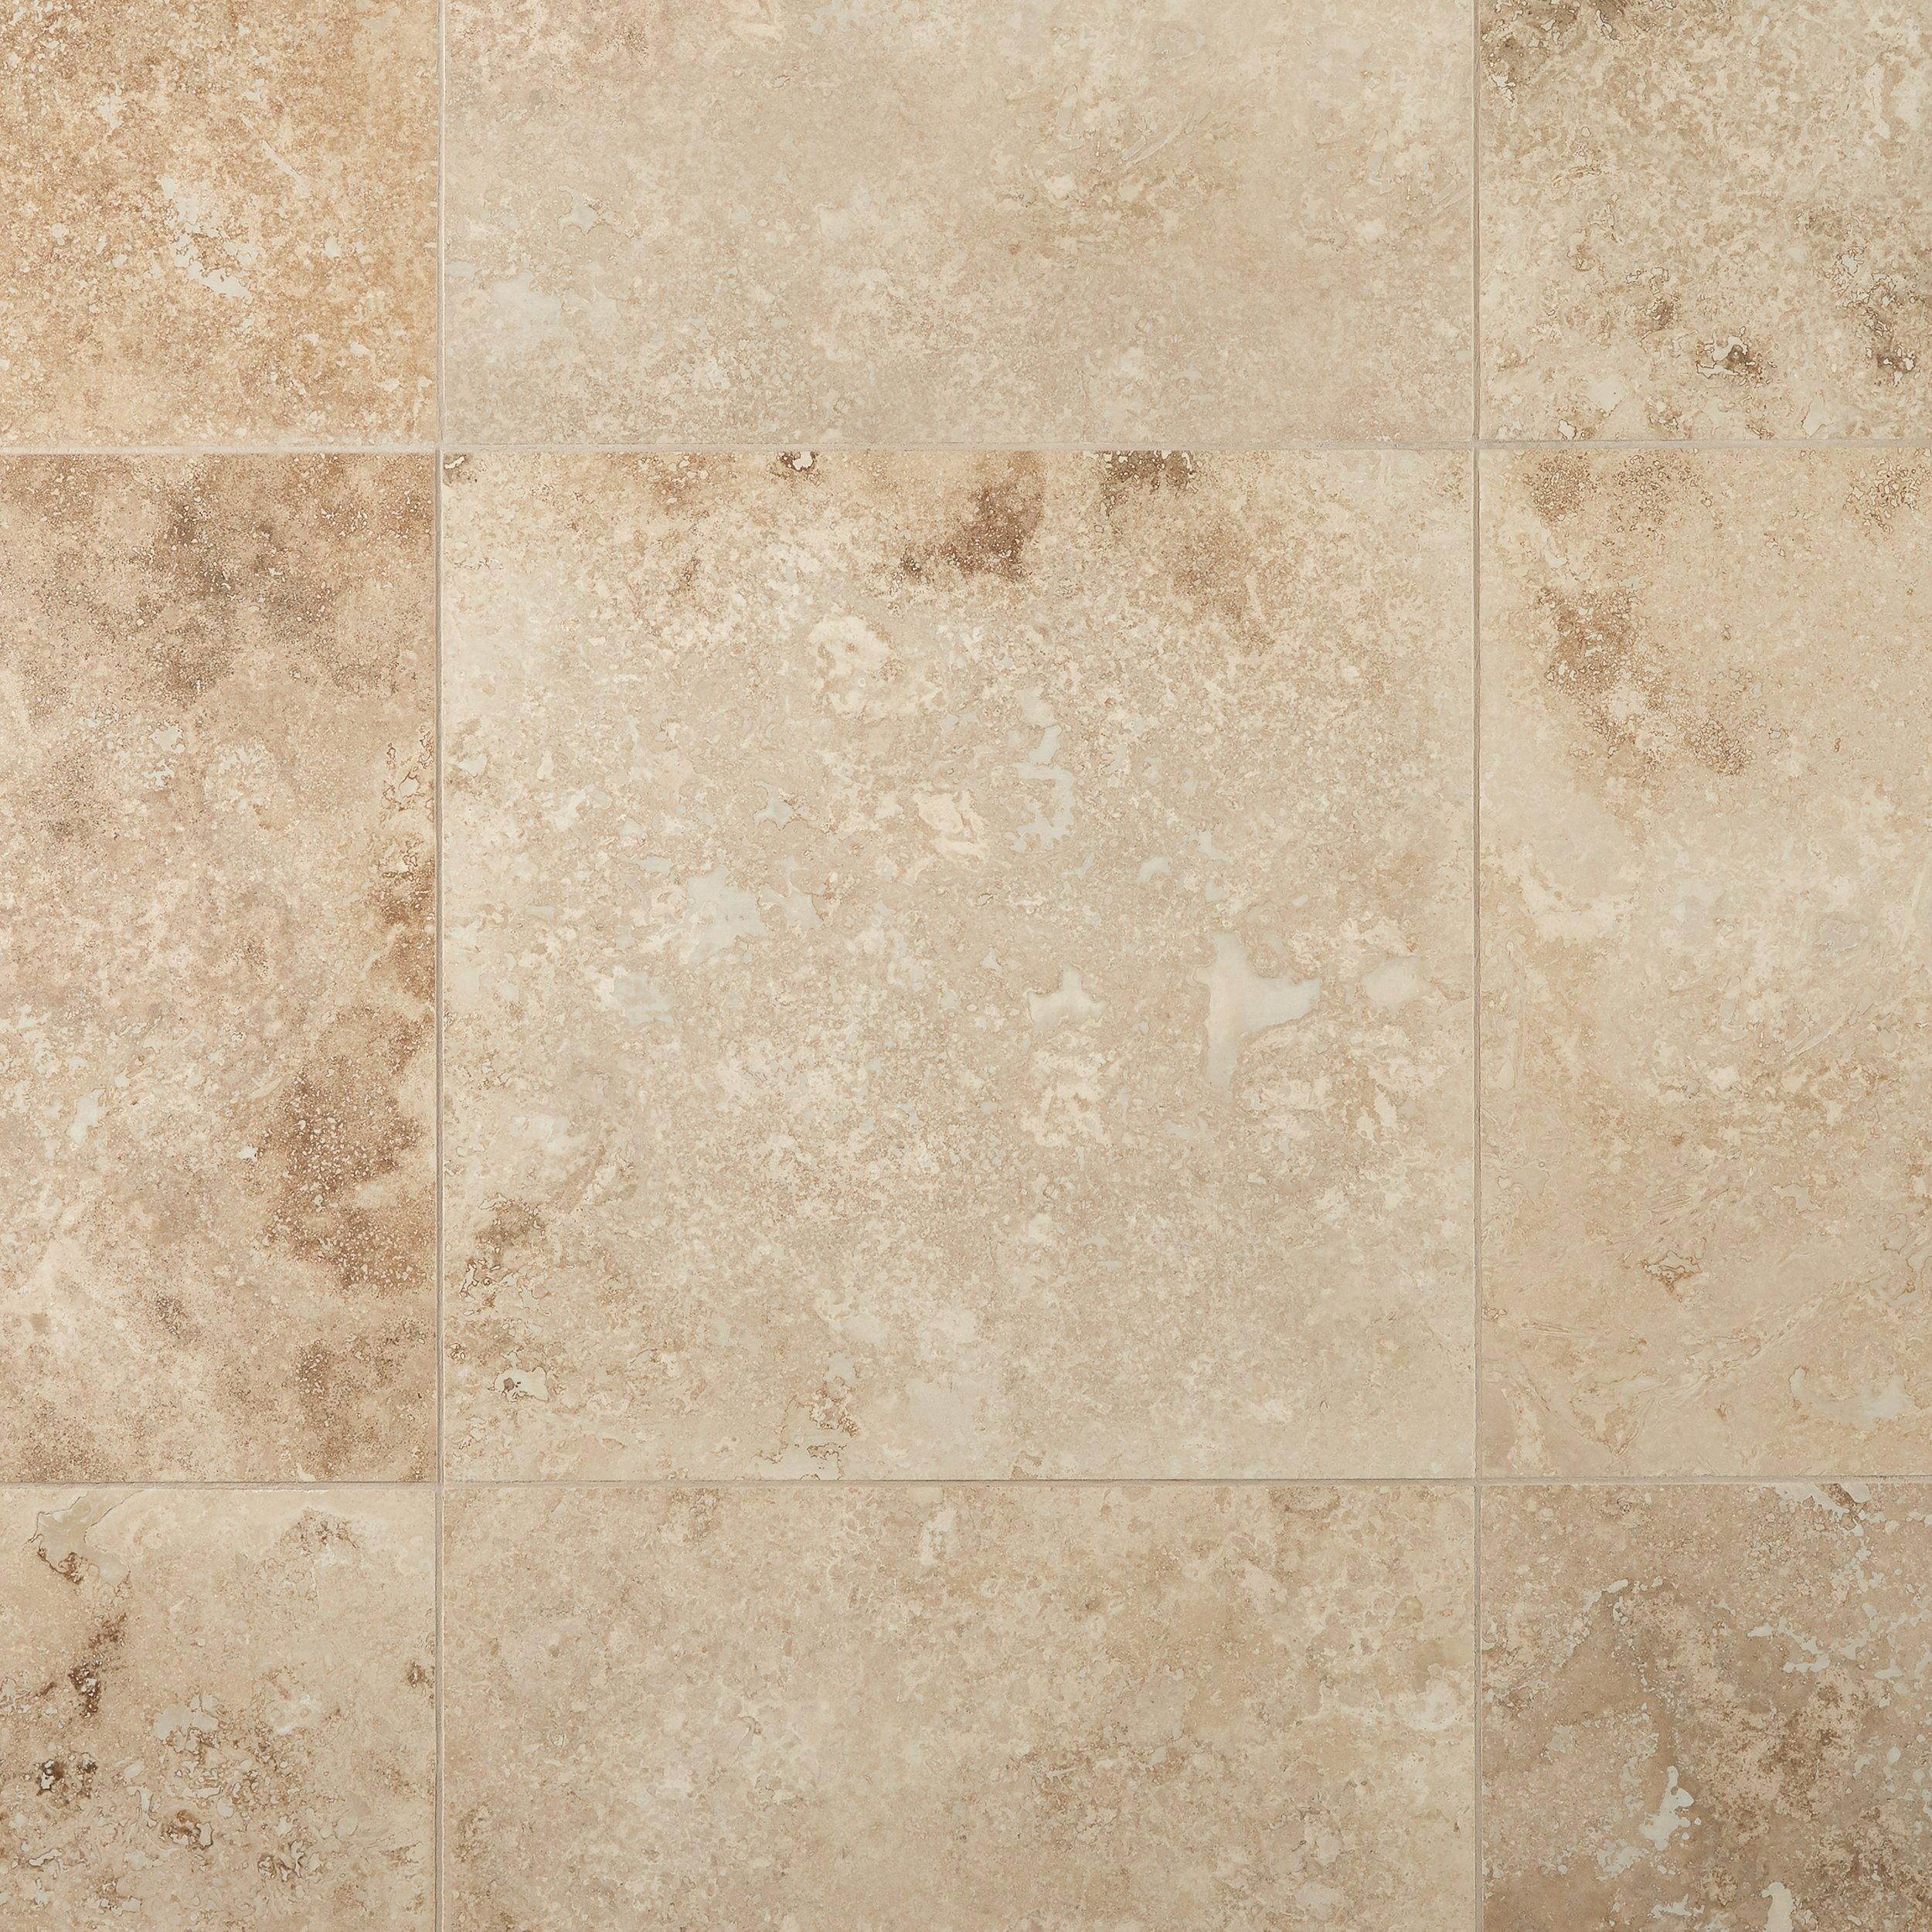 Paros Honed Filled Travertine Tile Travertine Tile Beige Travertine Tiles Travertine